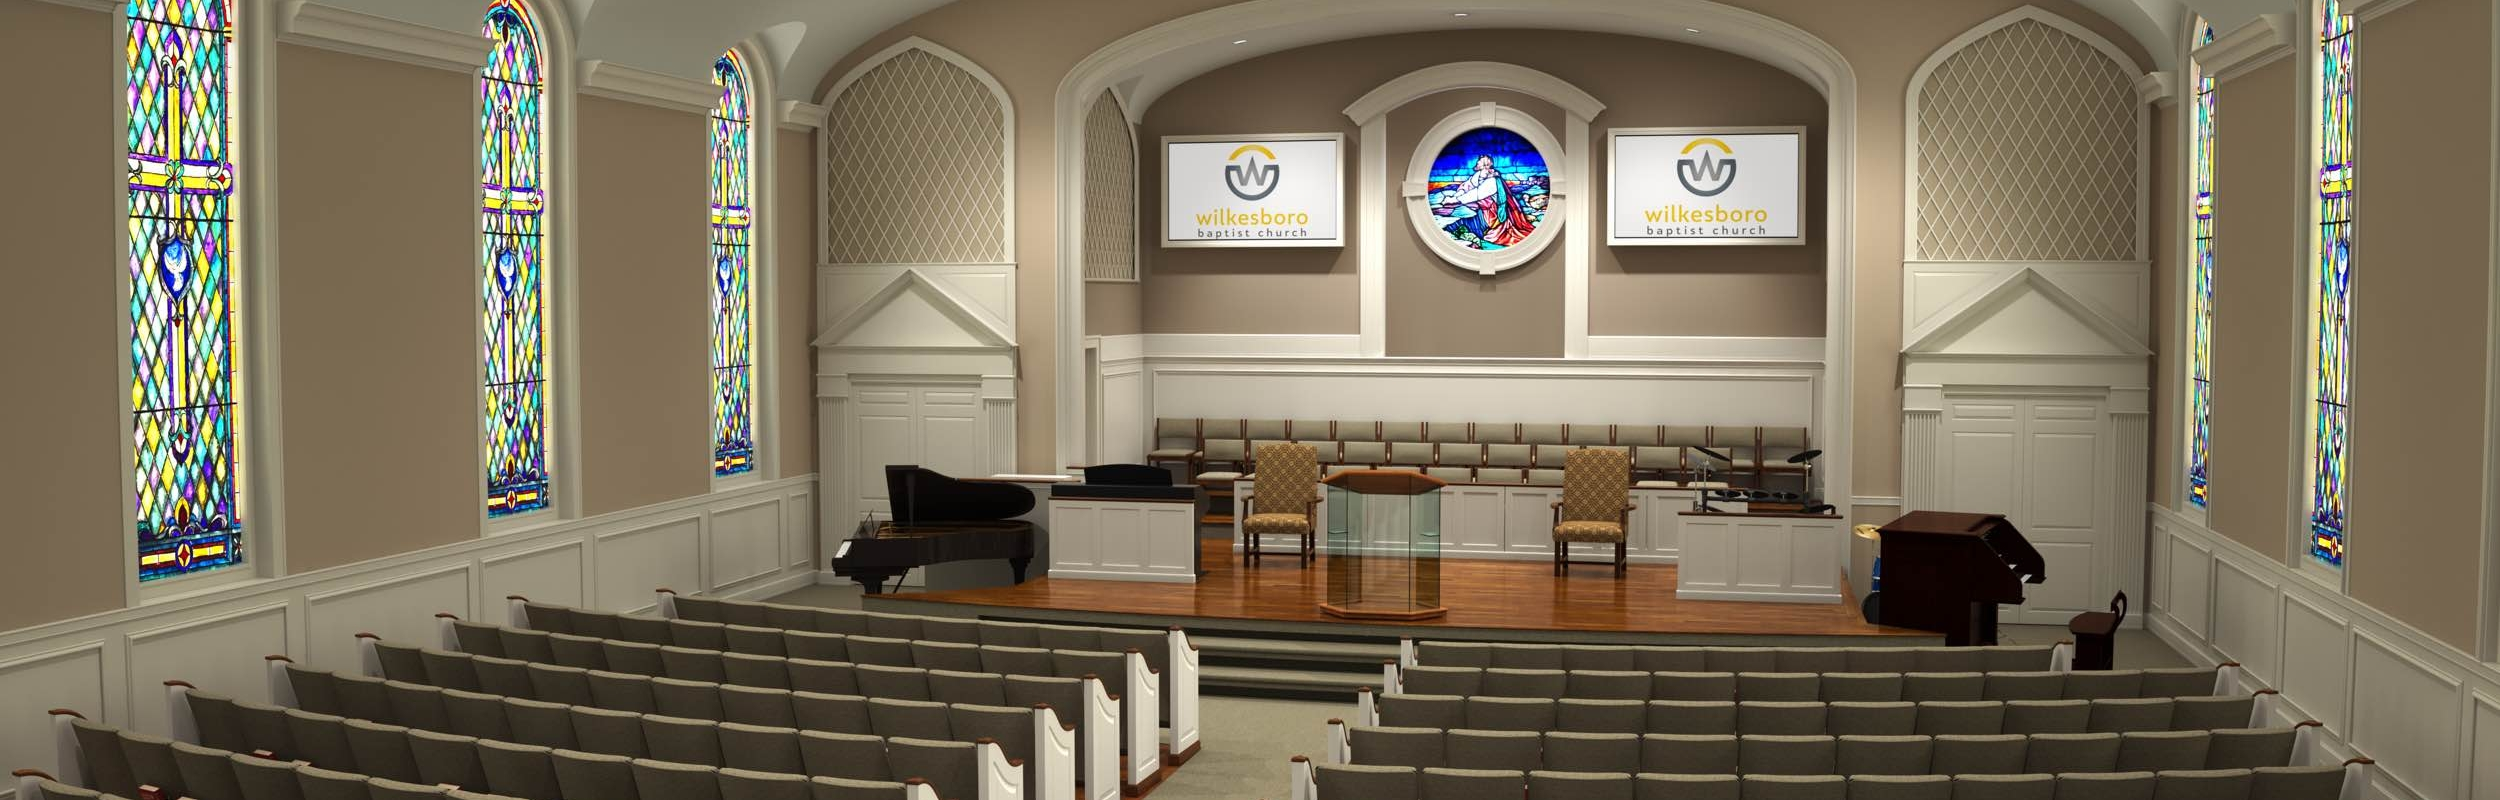 church with pin design interior pinterest flooring hardwood stage choir